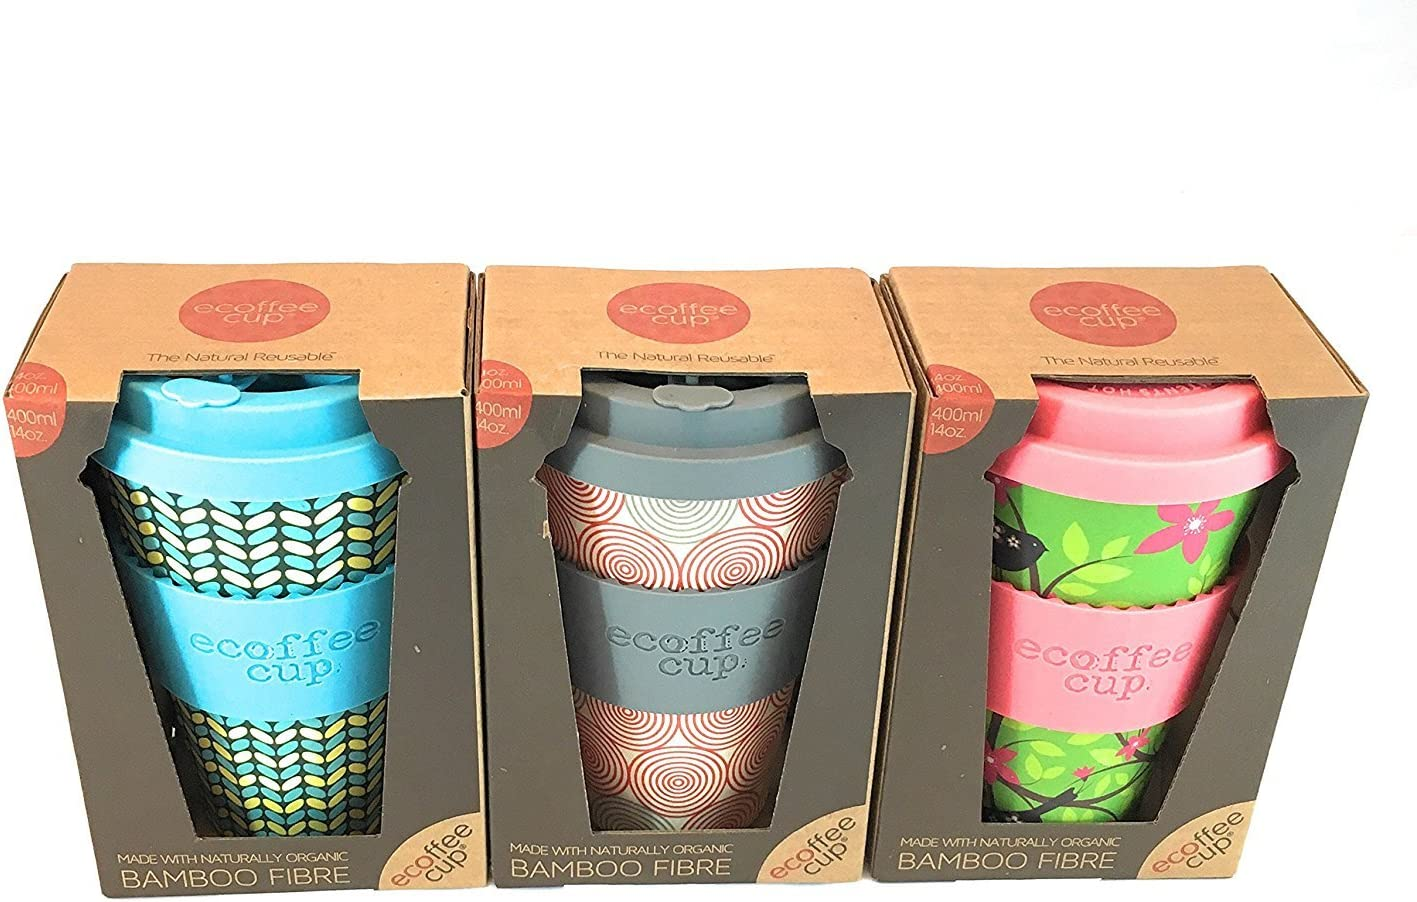 Ecoffee Cup 3 pack, Reusable Coffee Cup 400ml, Organic Natural Bamboo Fibre ideal travel mug or home coffee mug, 3 awesome designs in set